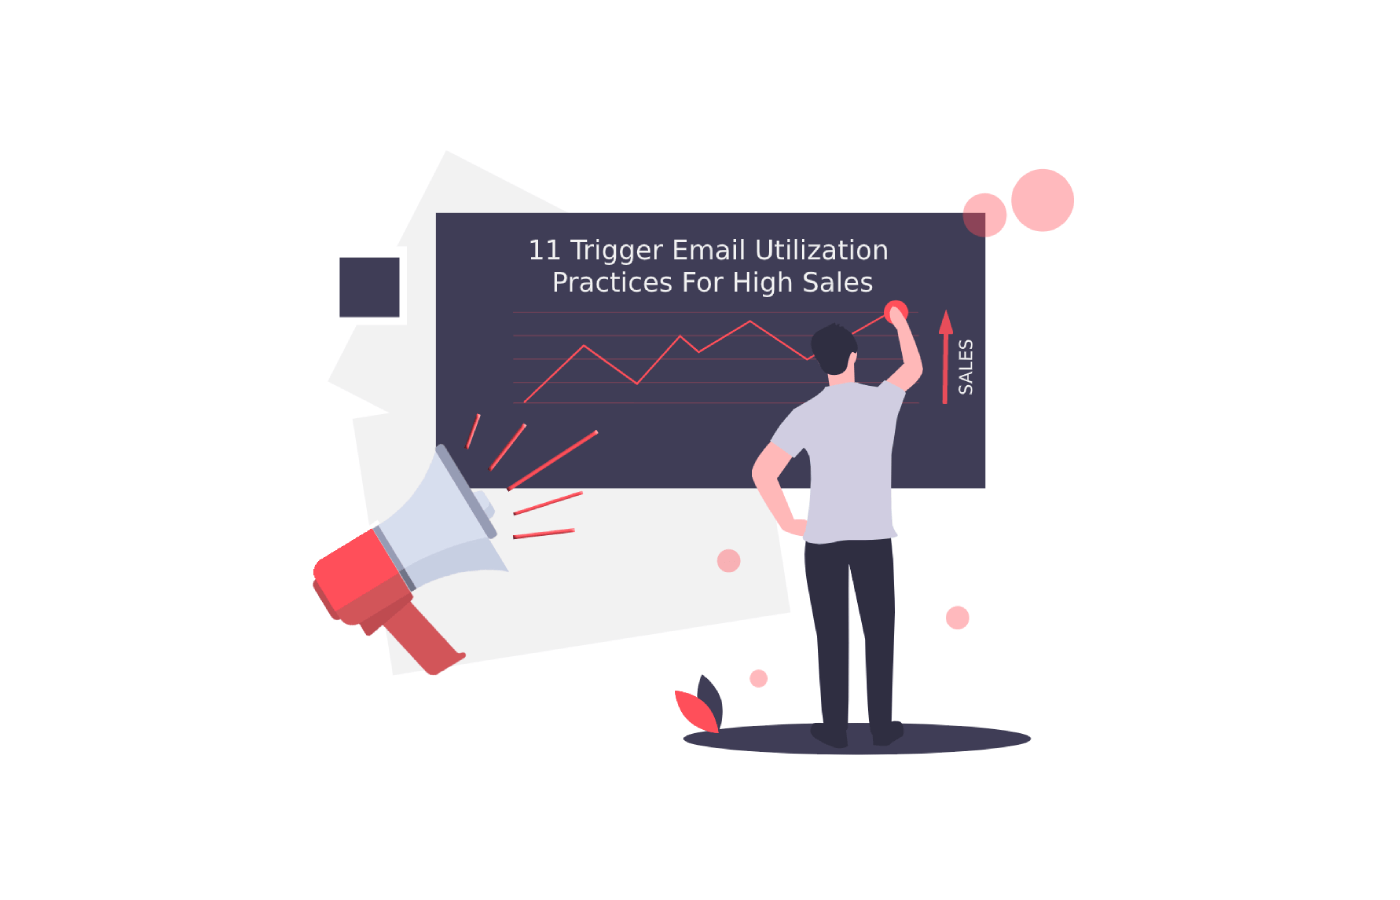 11_trigger_email_utilization_practices_for_high_sales